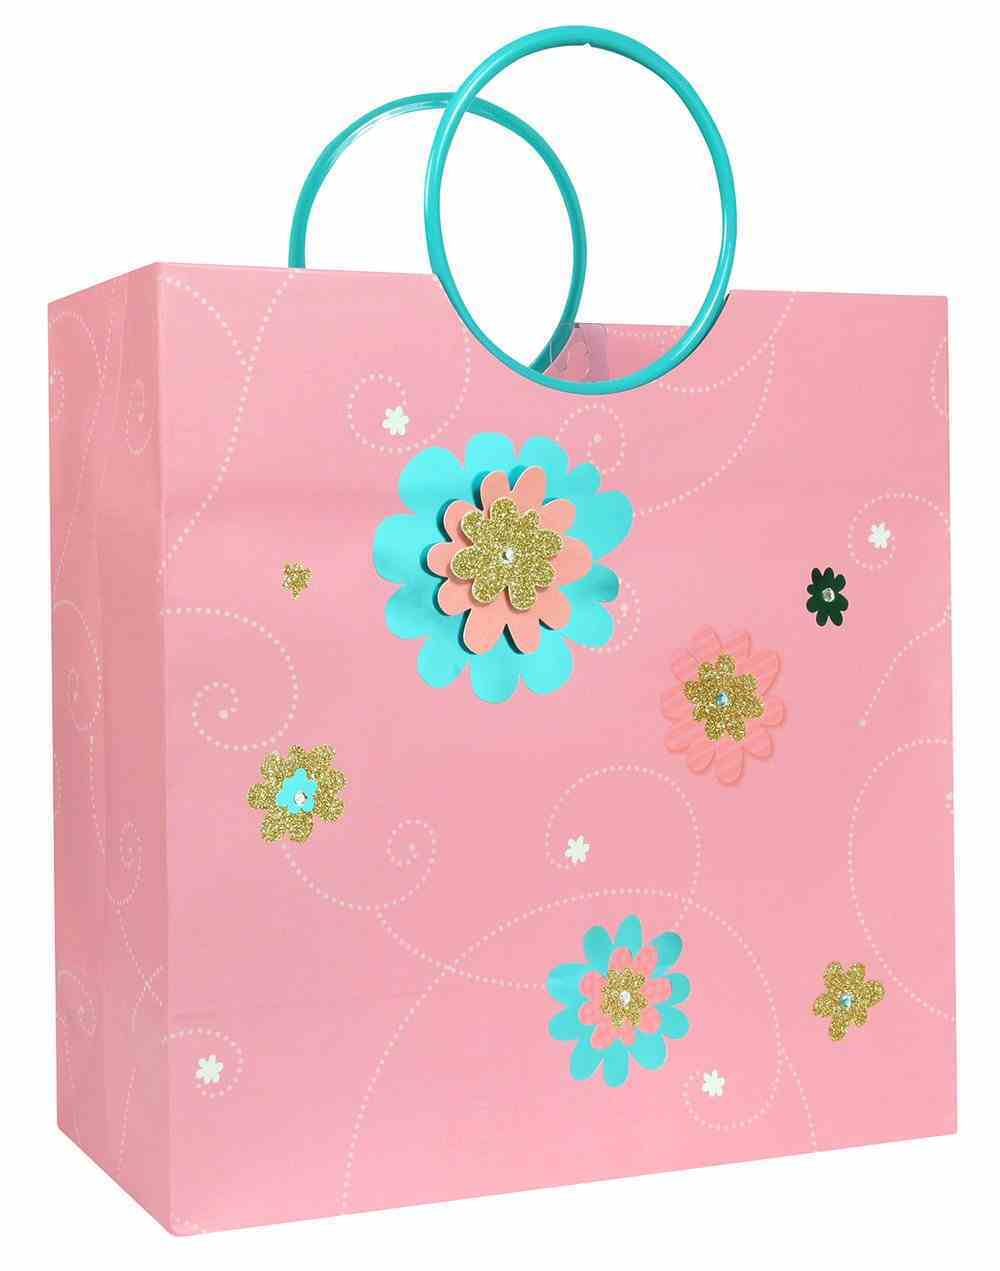 Gift Bag Large: Thank God Everyday, Pink/Blue Flowers (Incl Two Sheets Tissue Paper & Gift Tag) Stationery